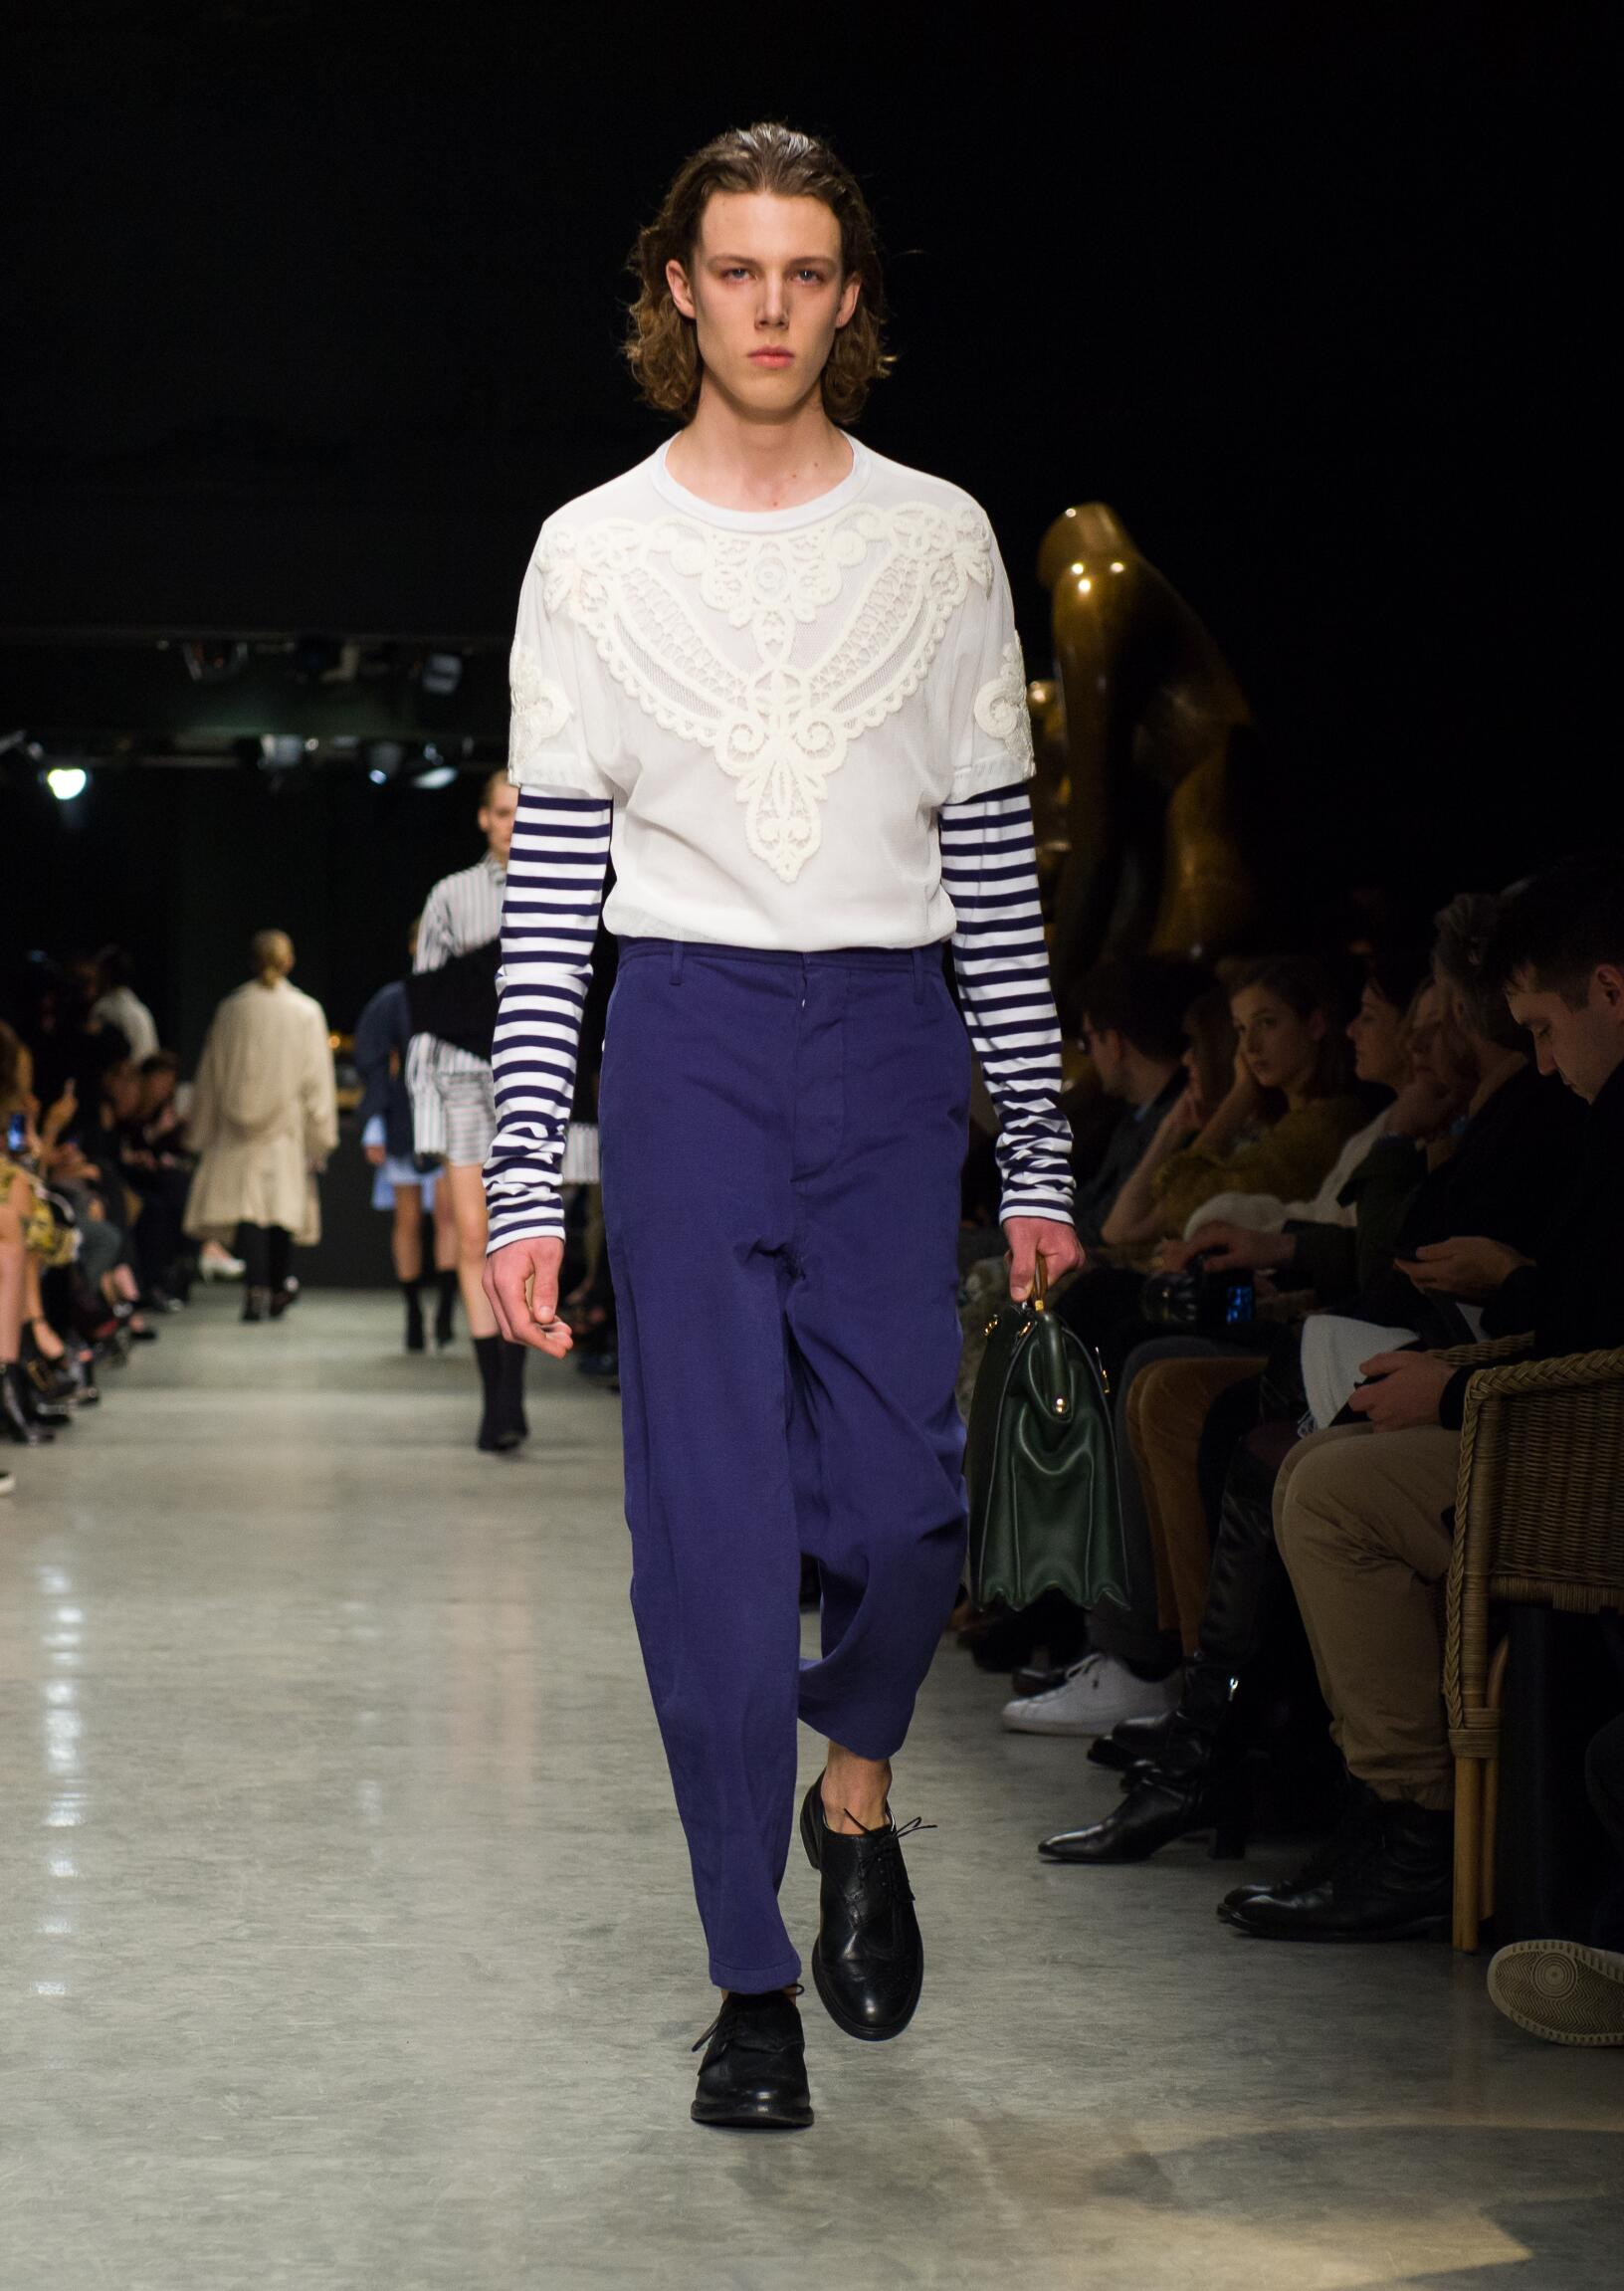 Burberry Man February Collection Fashion Show